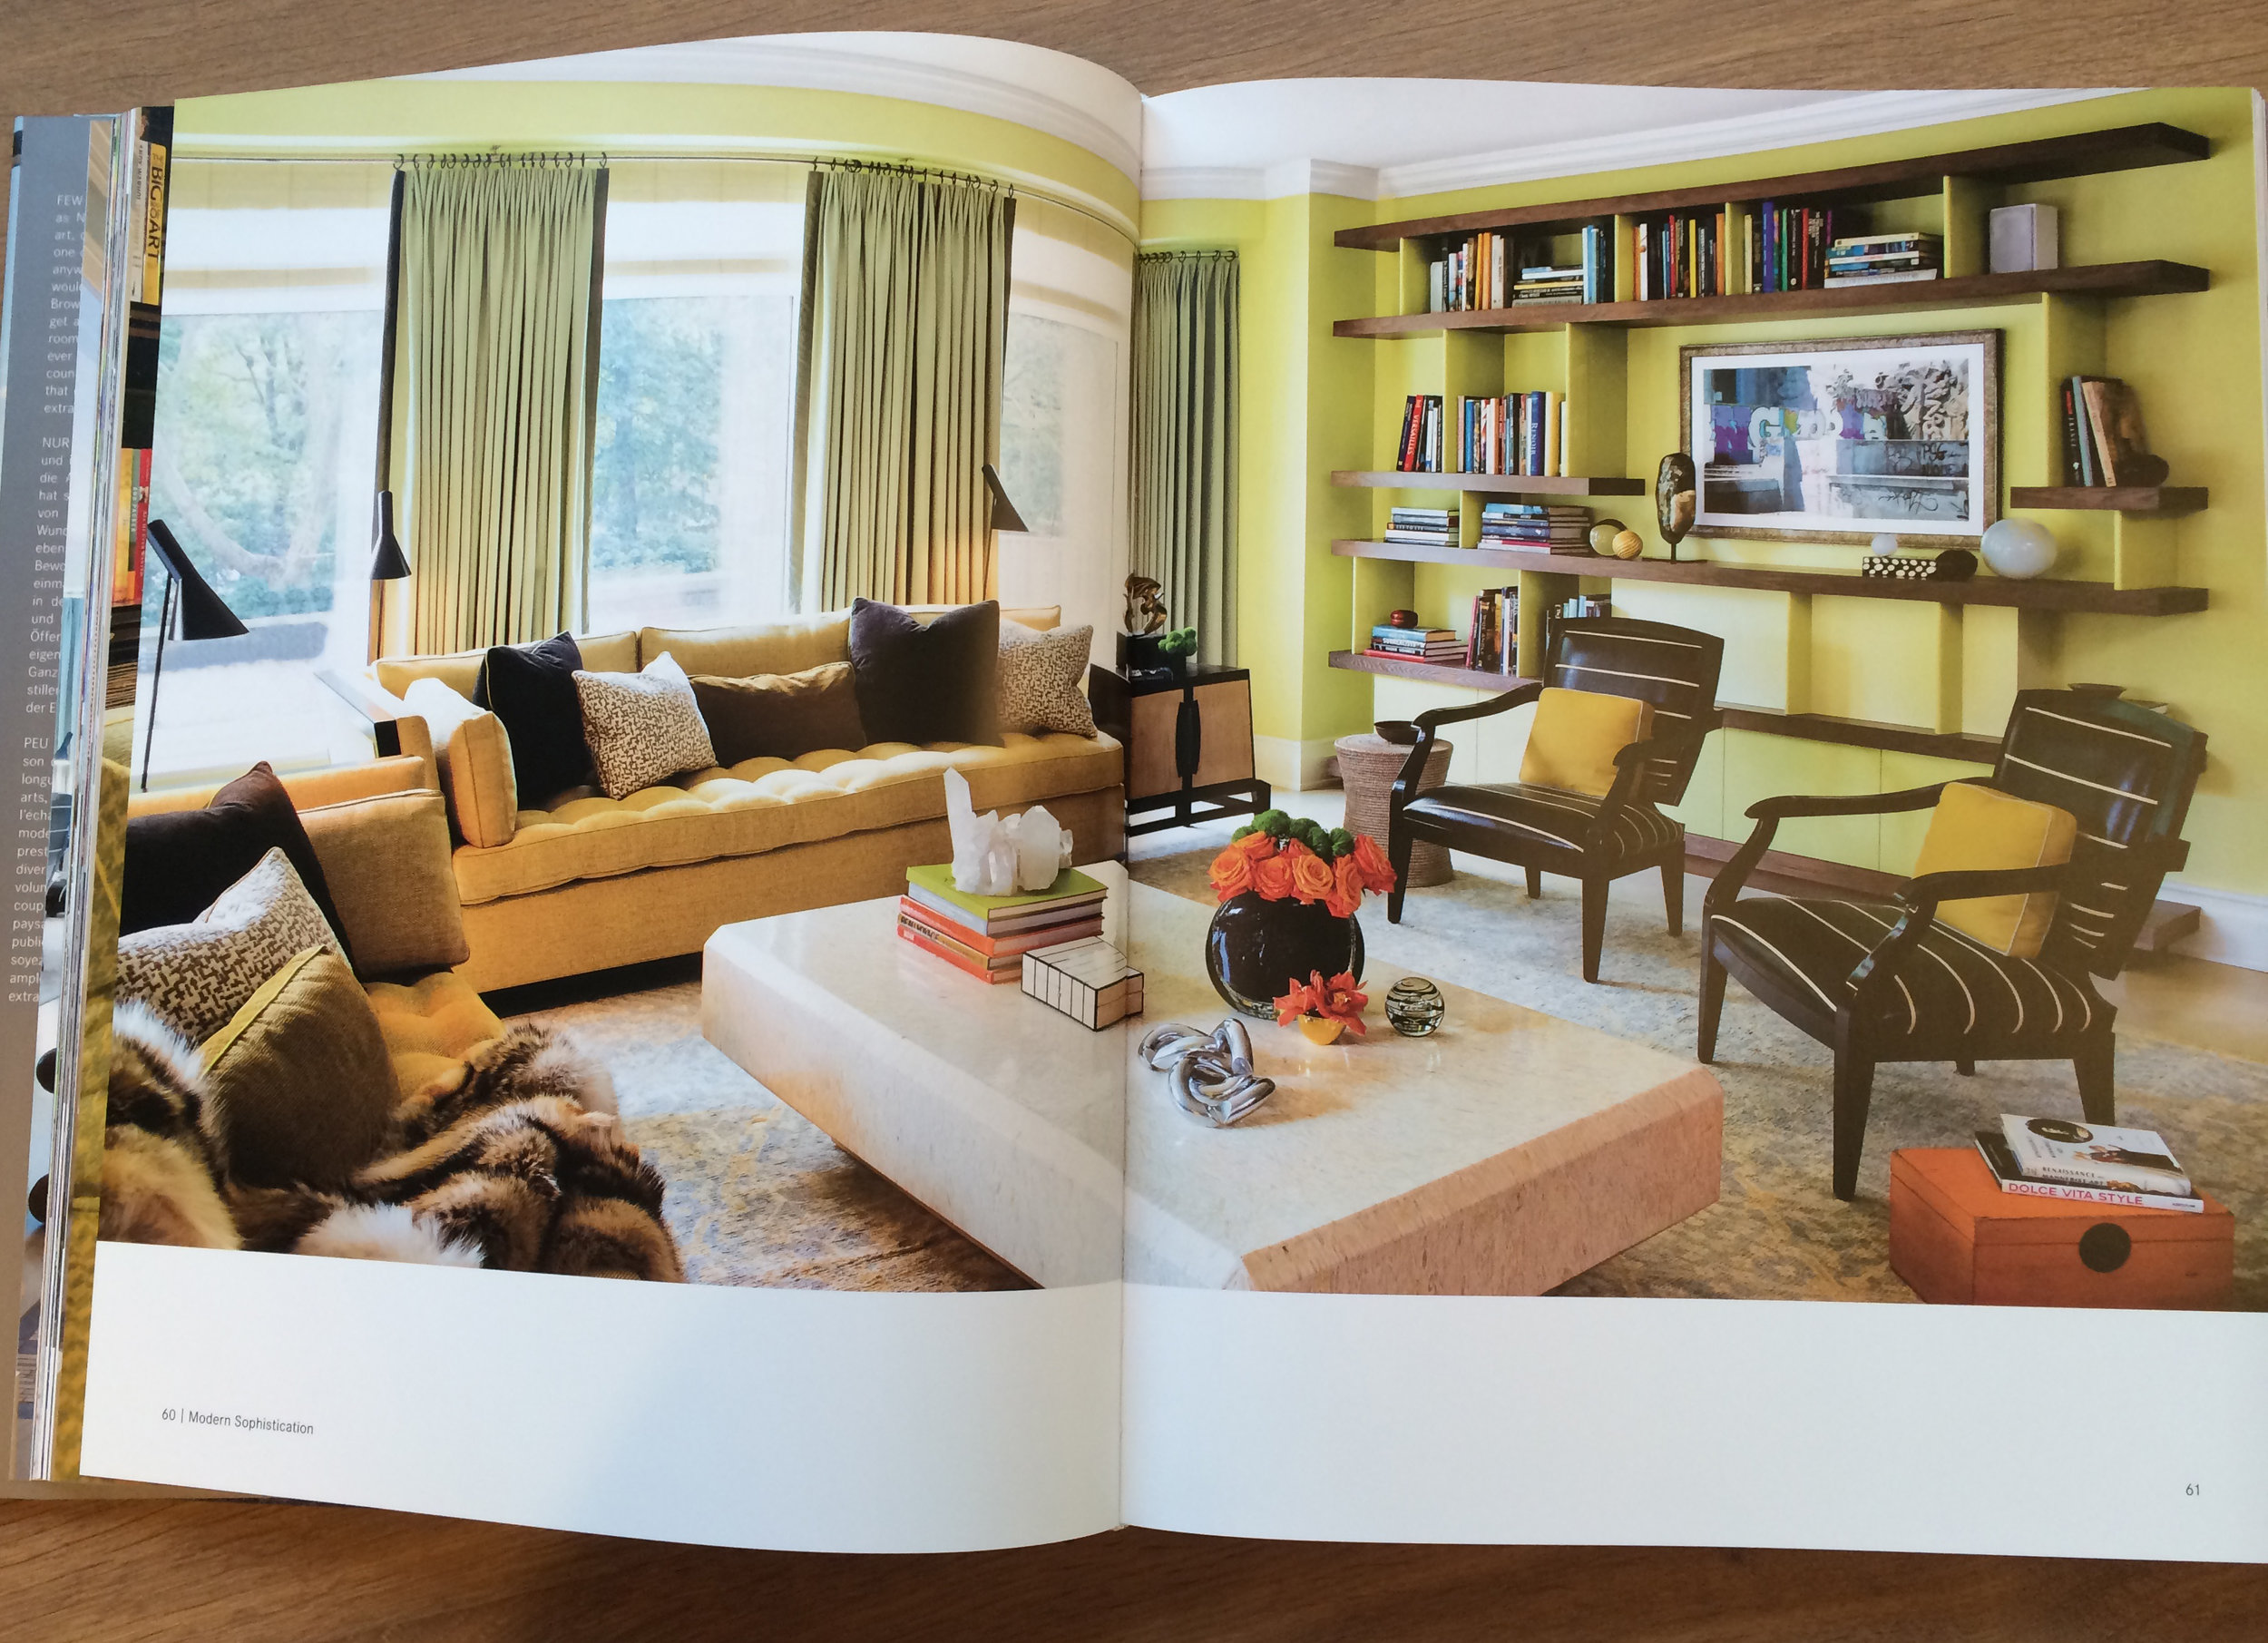 Living In Style New York Book 2014 - Page 3.JPG